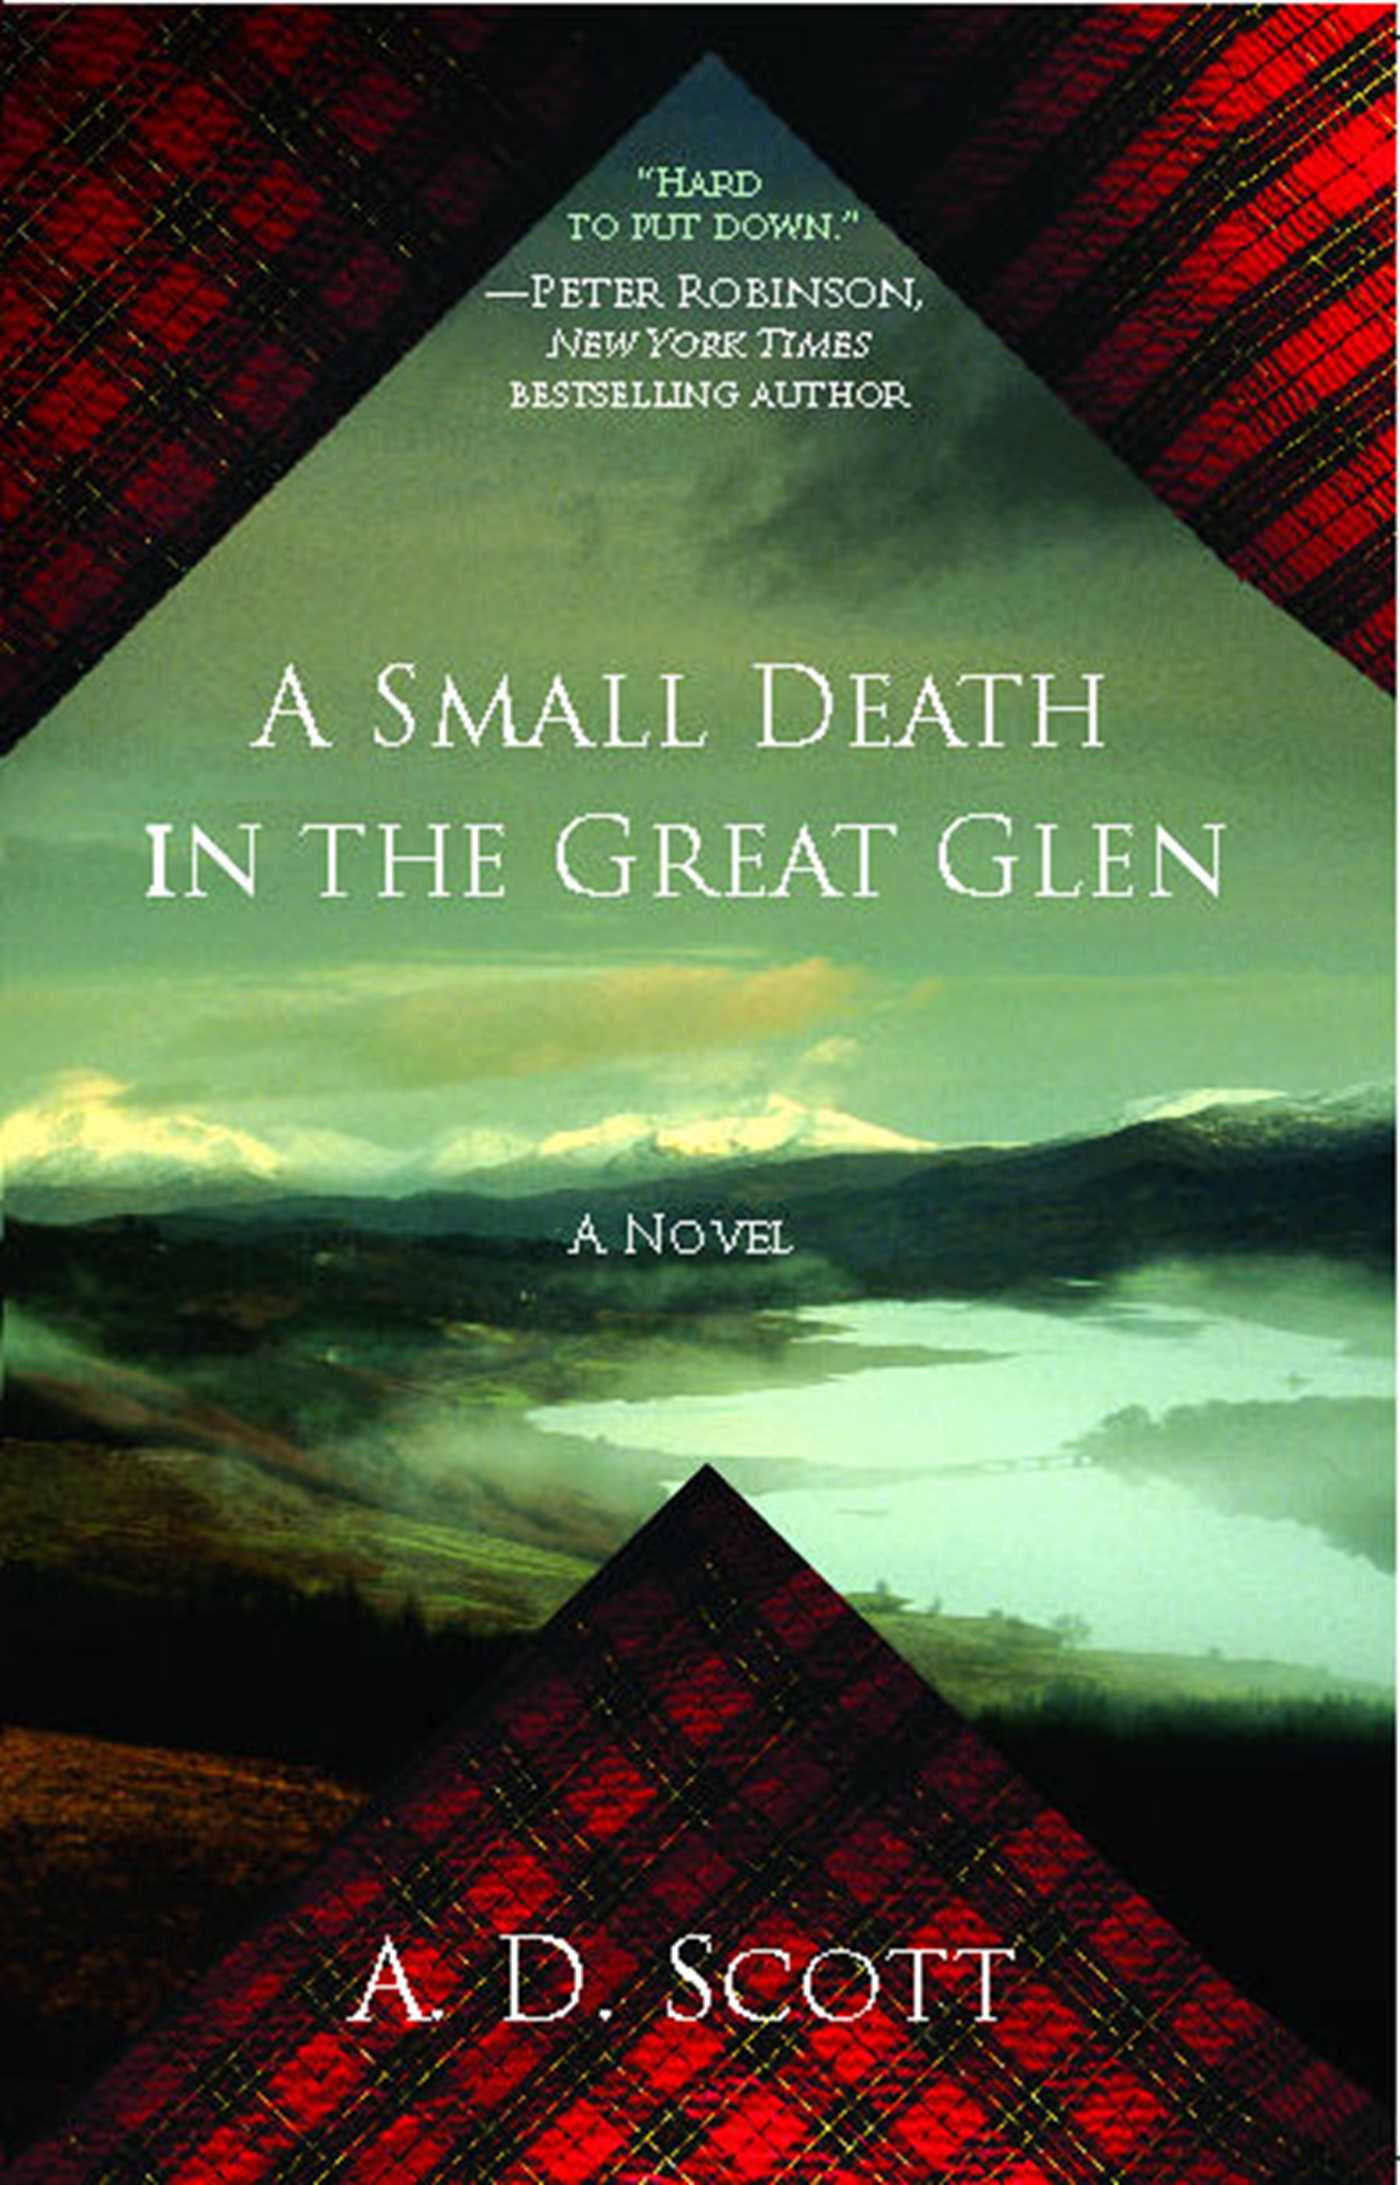 A small death in the great glen 9781439164839 hr